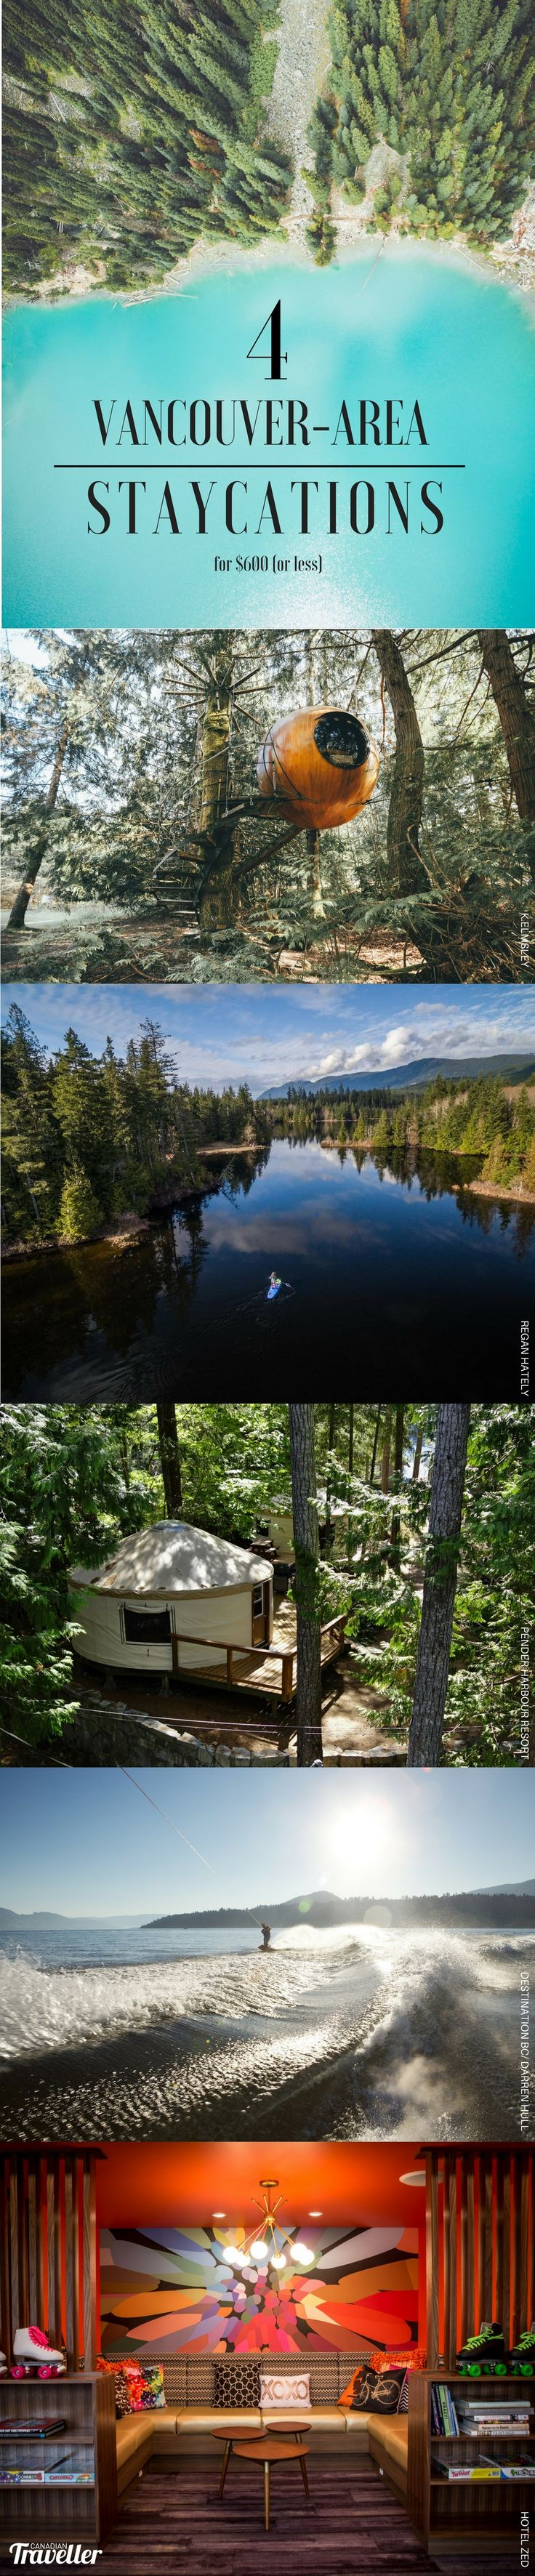 Oh Canada! 4 Two-Night Staycations from Vancouver That Cost $600 or Less via Canadian Traveller Magazine by Catherine Tse.   Vancouver Island | Pemberton | Kelowna | Pender Harbour | Free Spirit Spheres | Pender Harbour Resort & Marina | Pemberton Valley Inn | Hotel Zed | Joffre Lakes | Sunshine Coast